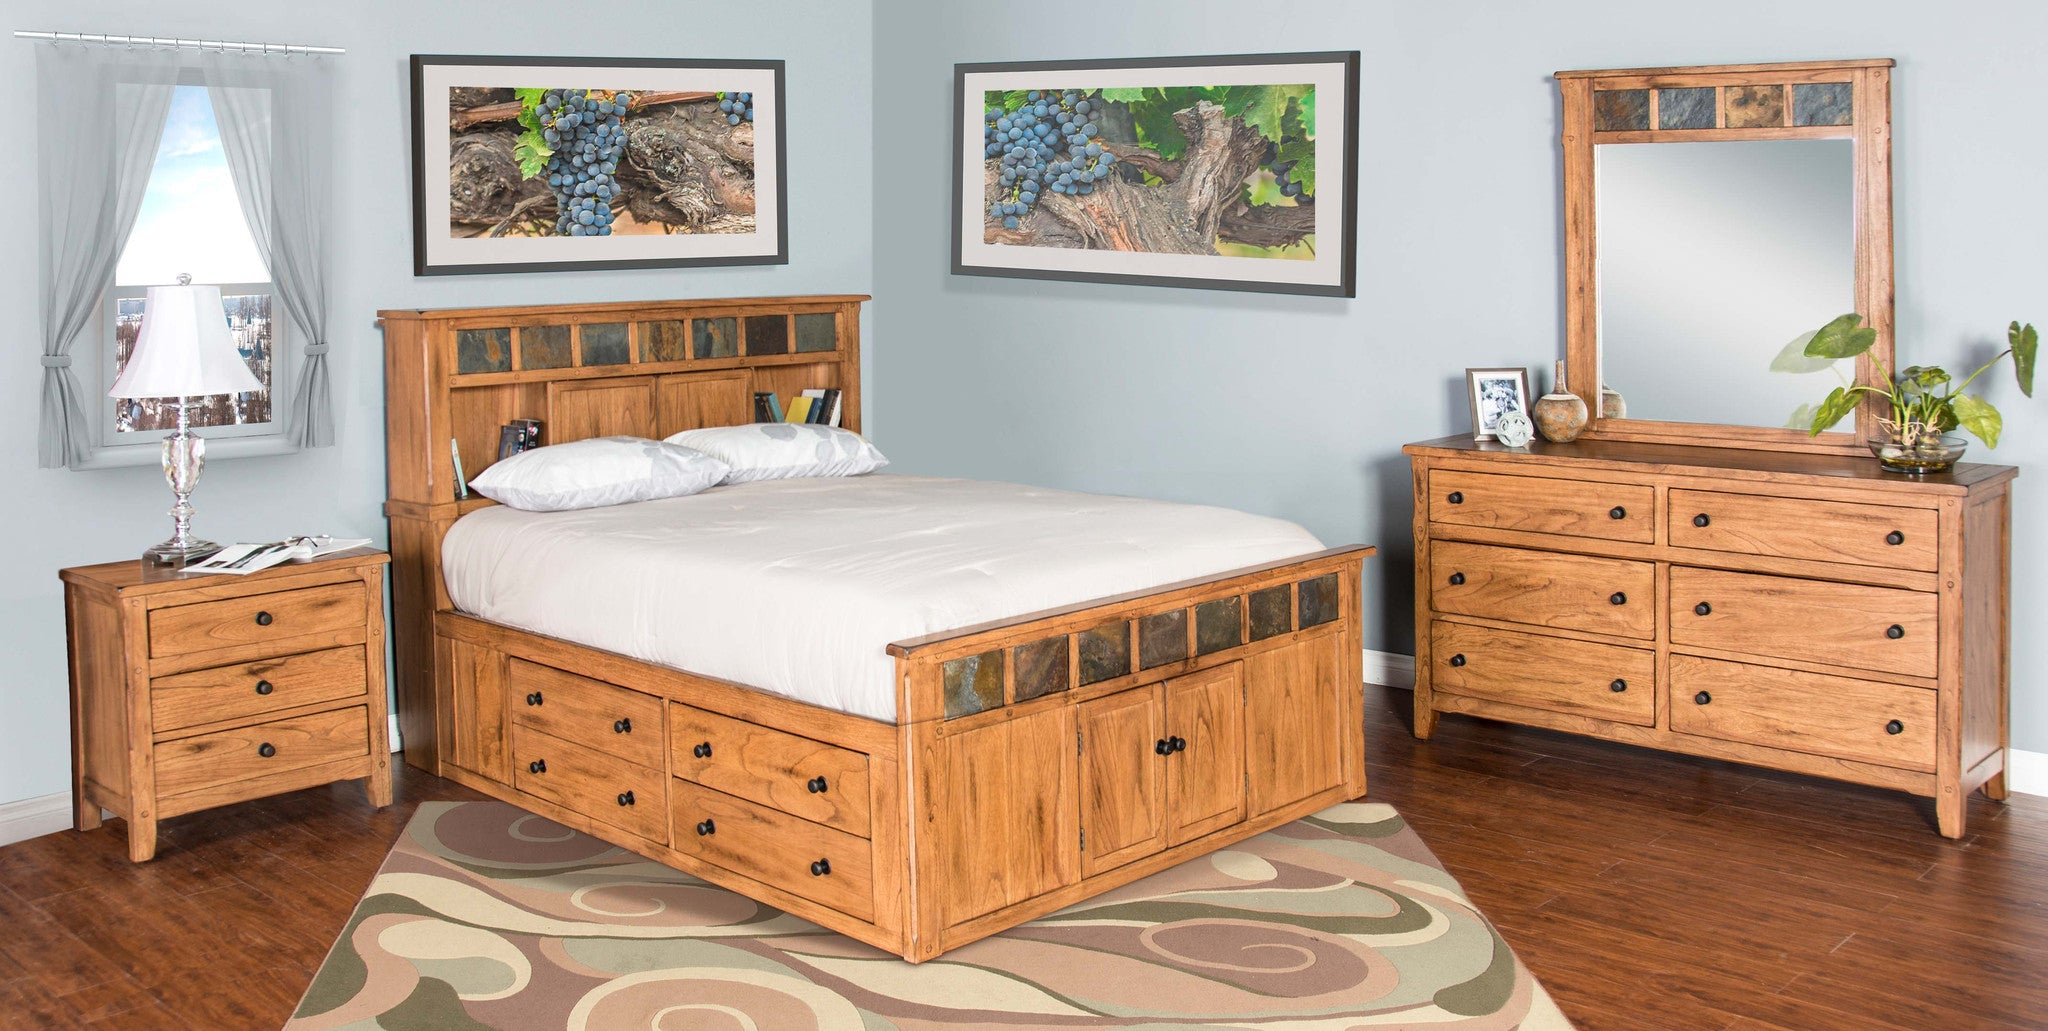 Genial Sedona Rustic Petite Storage Bedroom Suite   E King Size   Oak For Less®  Furniture ...